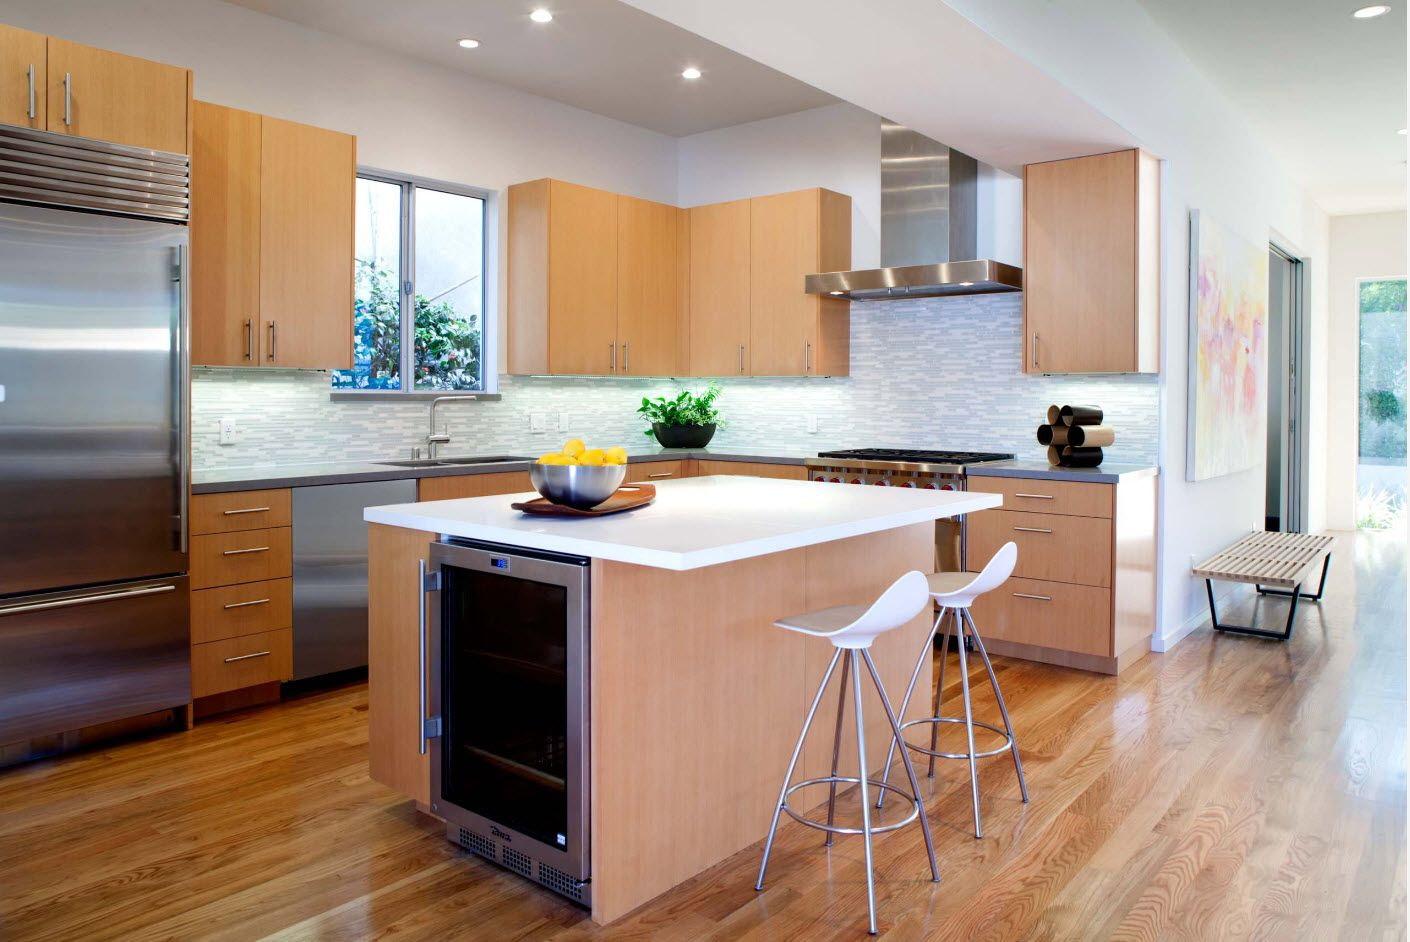 Wooden materials all over the hi-tech styled kitchen